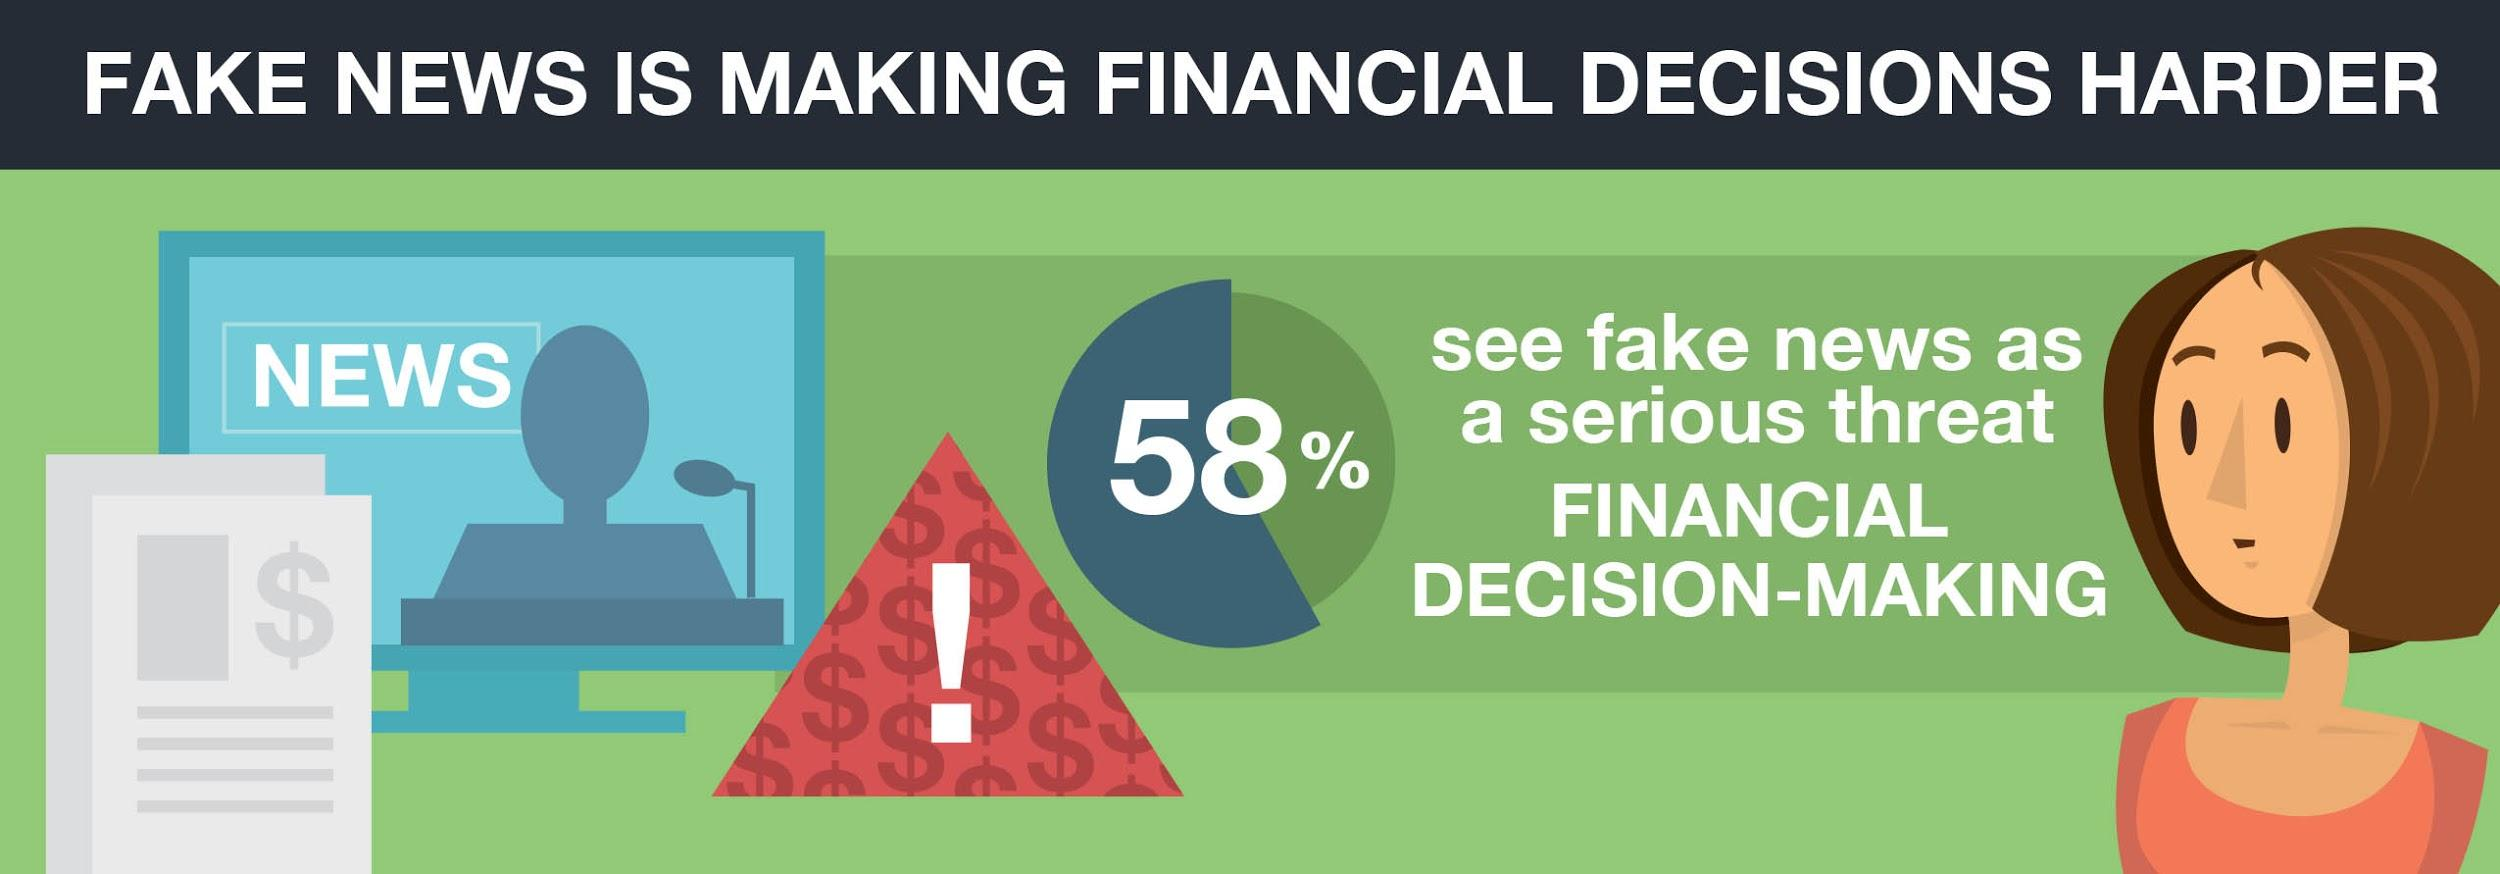 Fake news influencing financial decisions